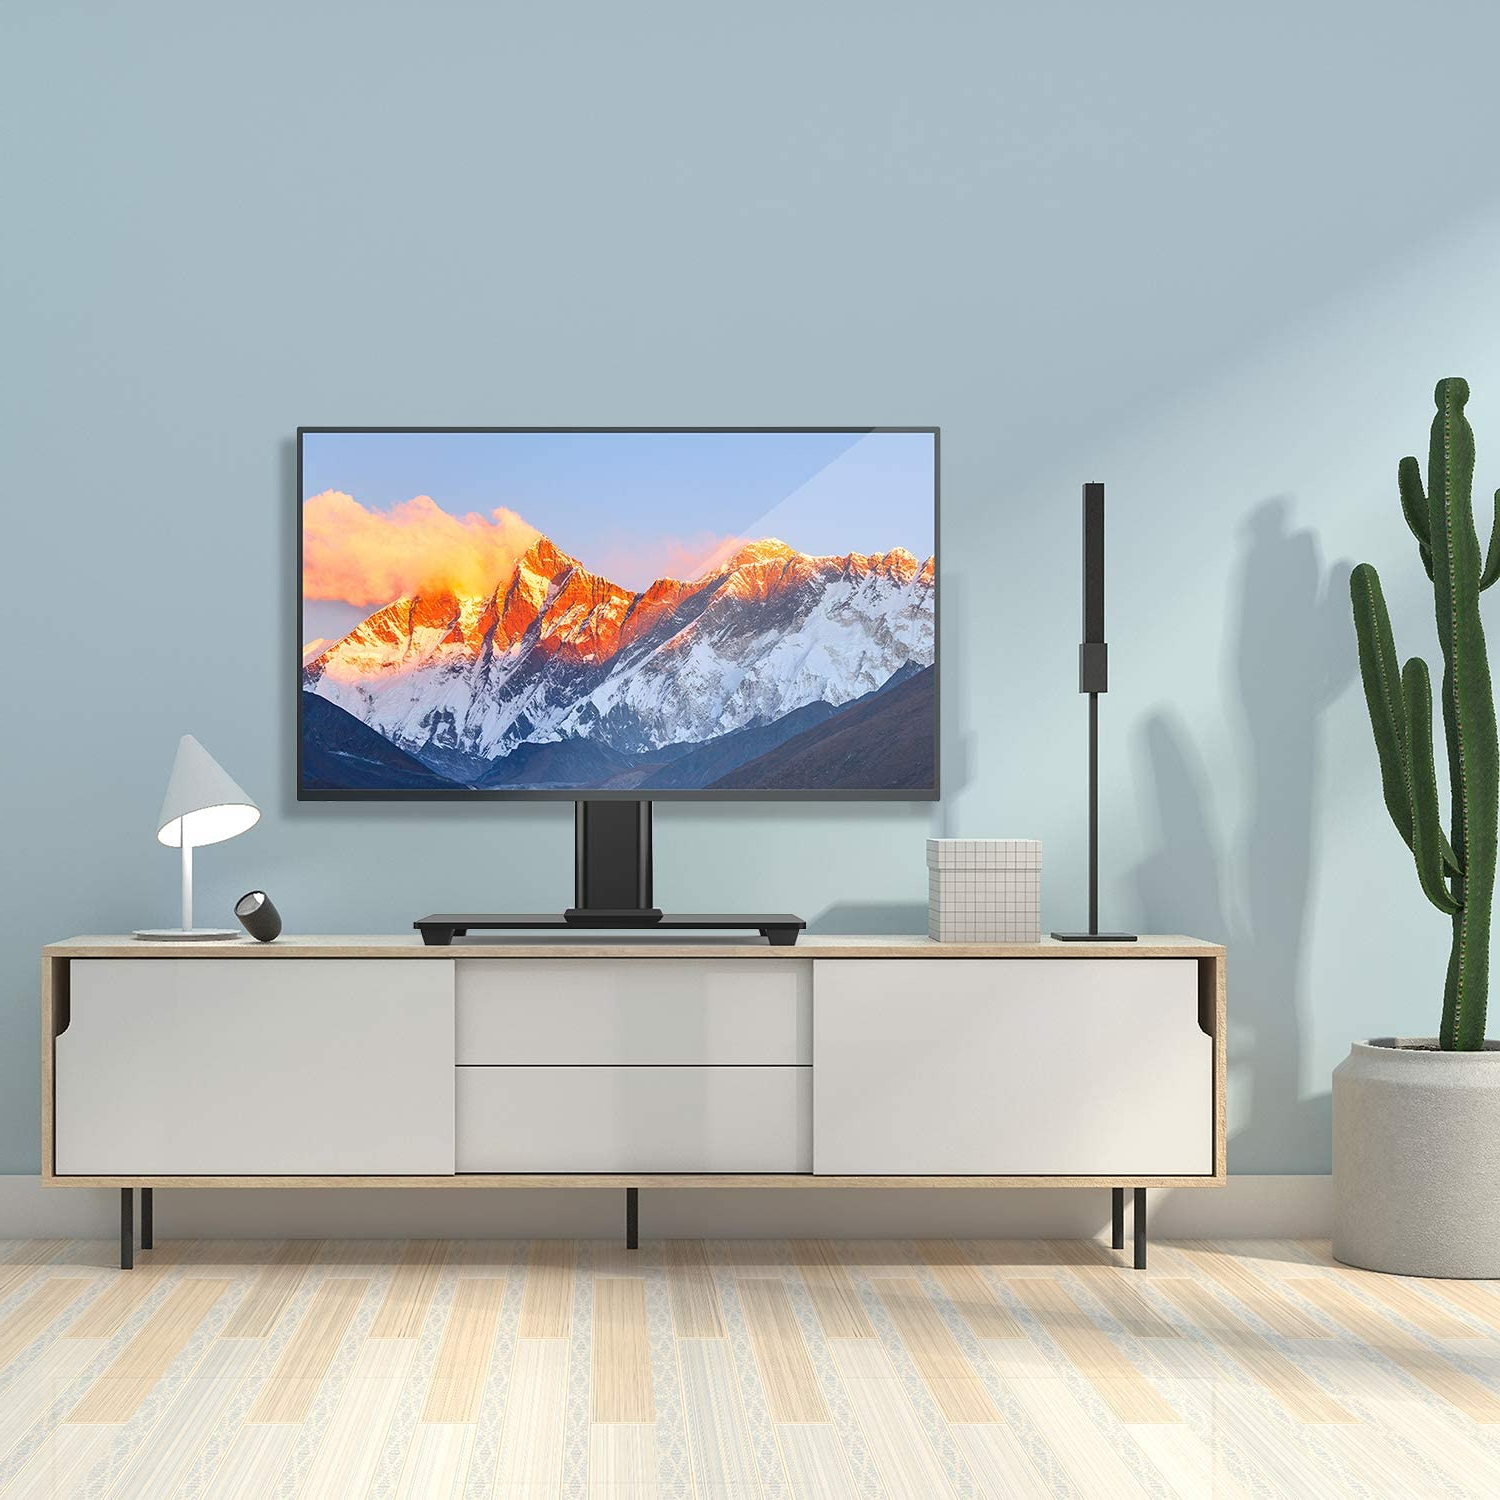 Most Popular Perlesmith Universal Tv Stand Table Top Tv Stand For 37 55 Throughout Polar Led Tv Stands (View 4 of 10)